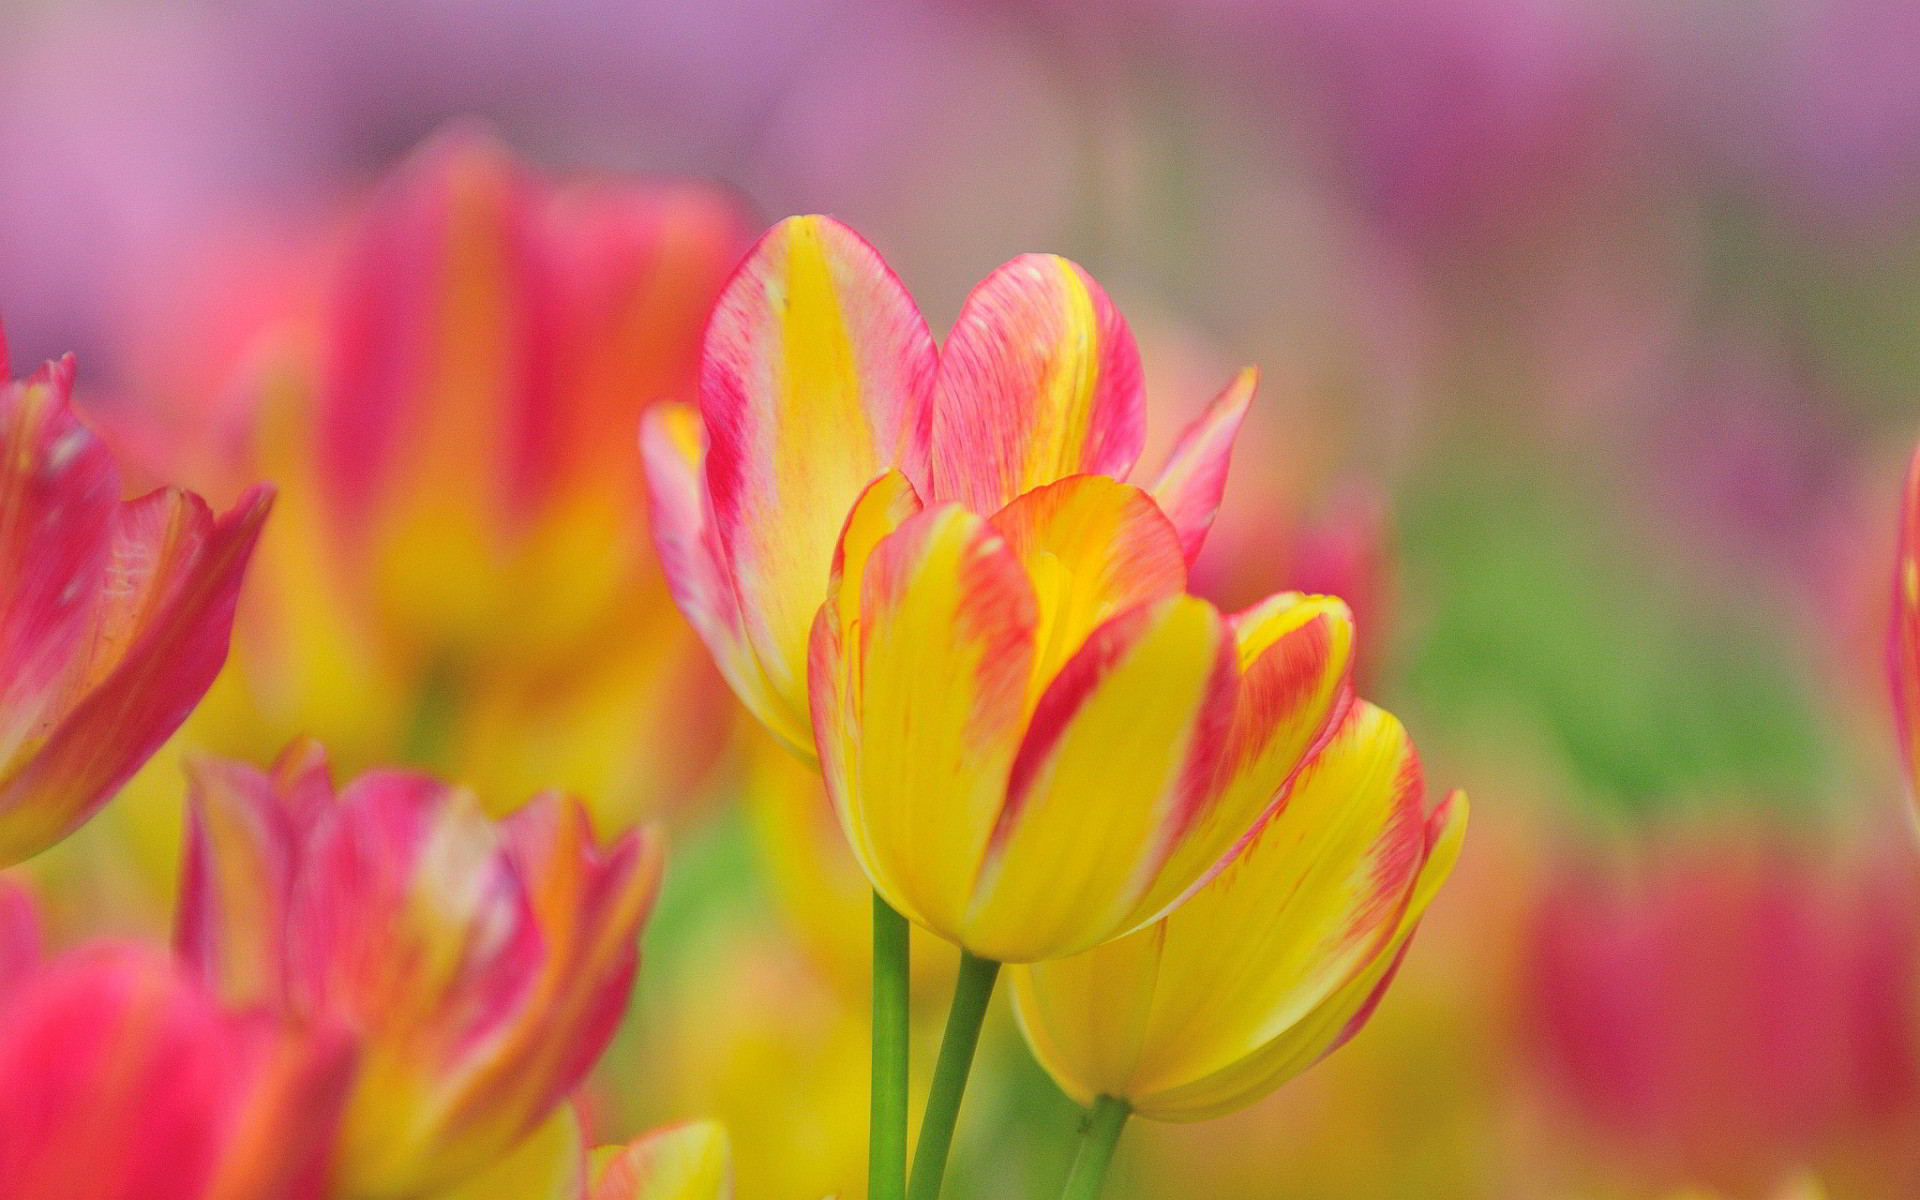 Res: 1920x1200, Yellow And Pink Tulips Wallpaper